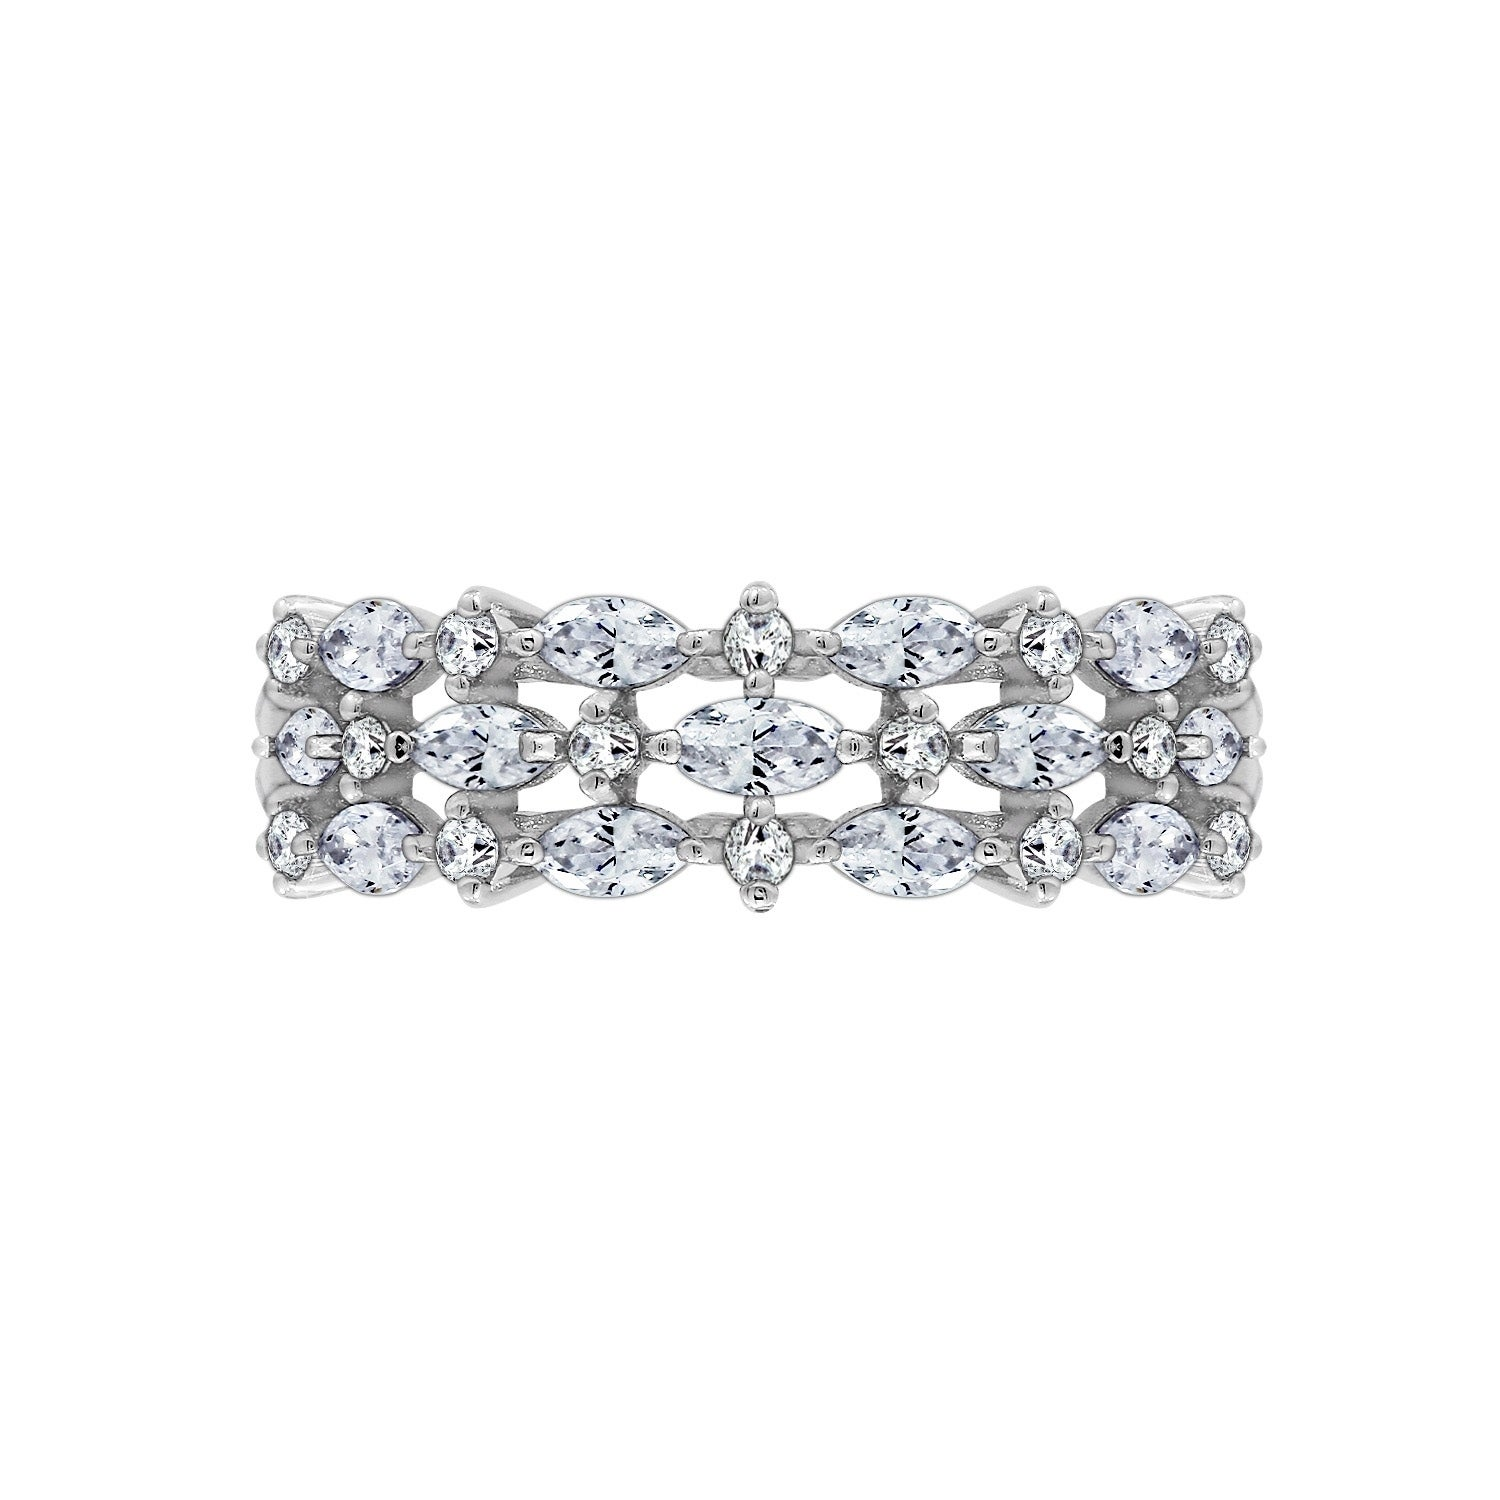 245c97705526a Platinum Plated Sterling Silver Swarovski Zirconia 1.55 ct. Three-Row  Marquise Ring